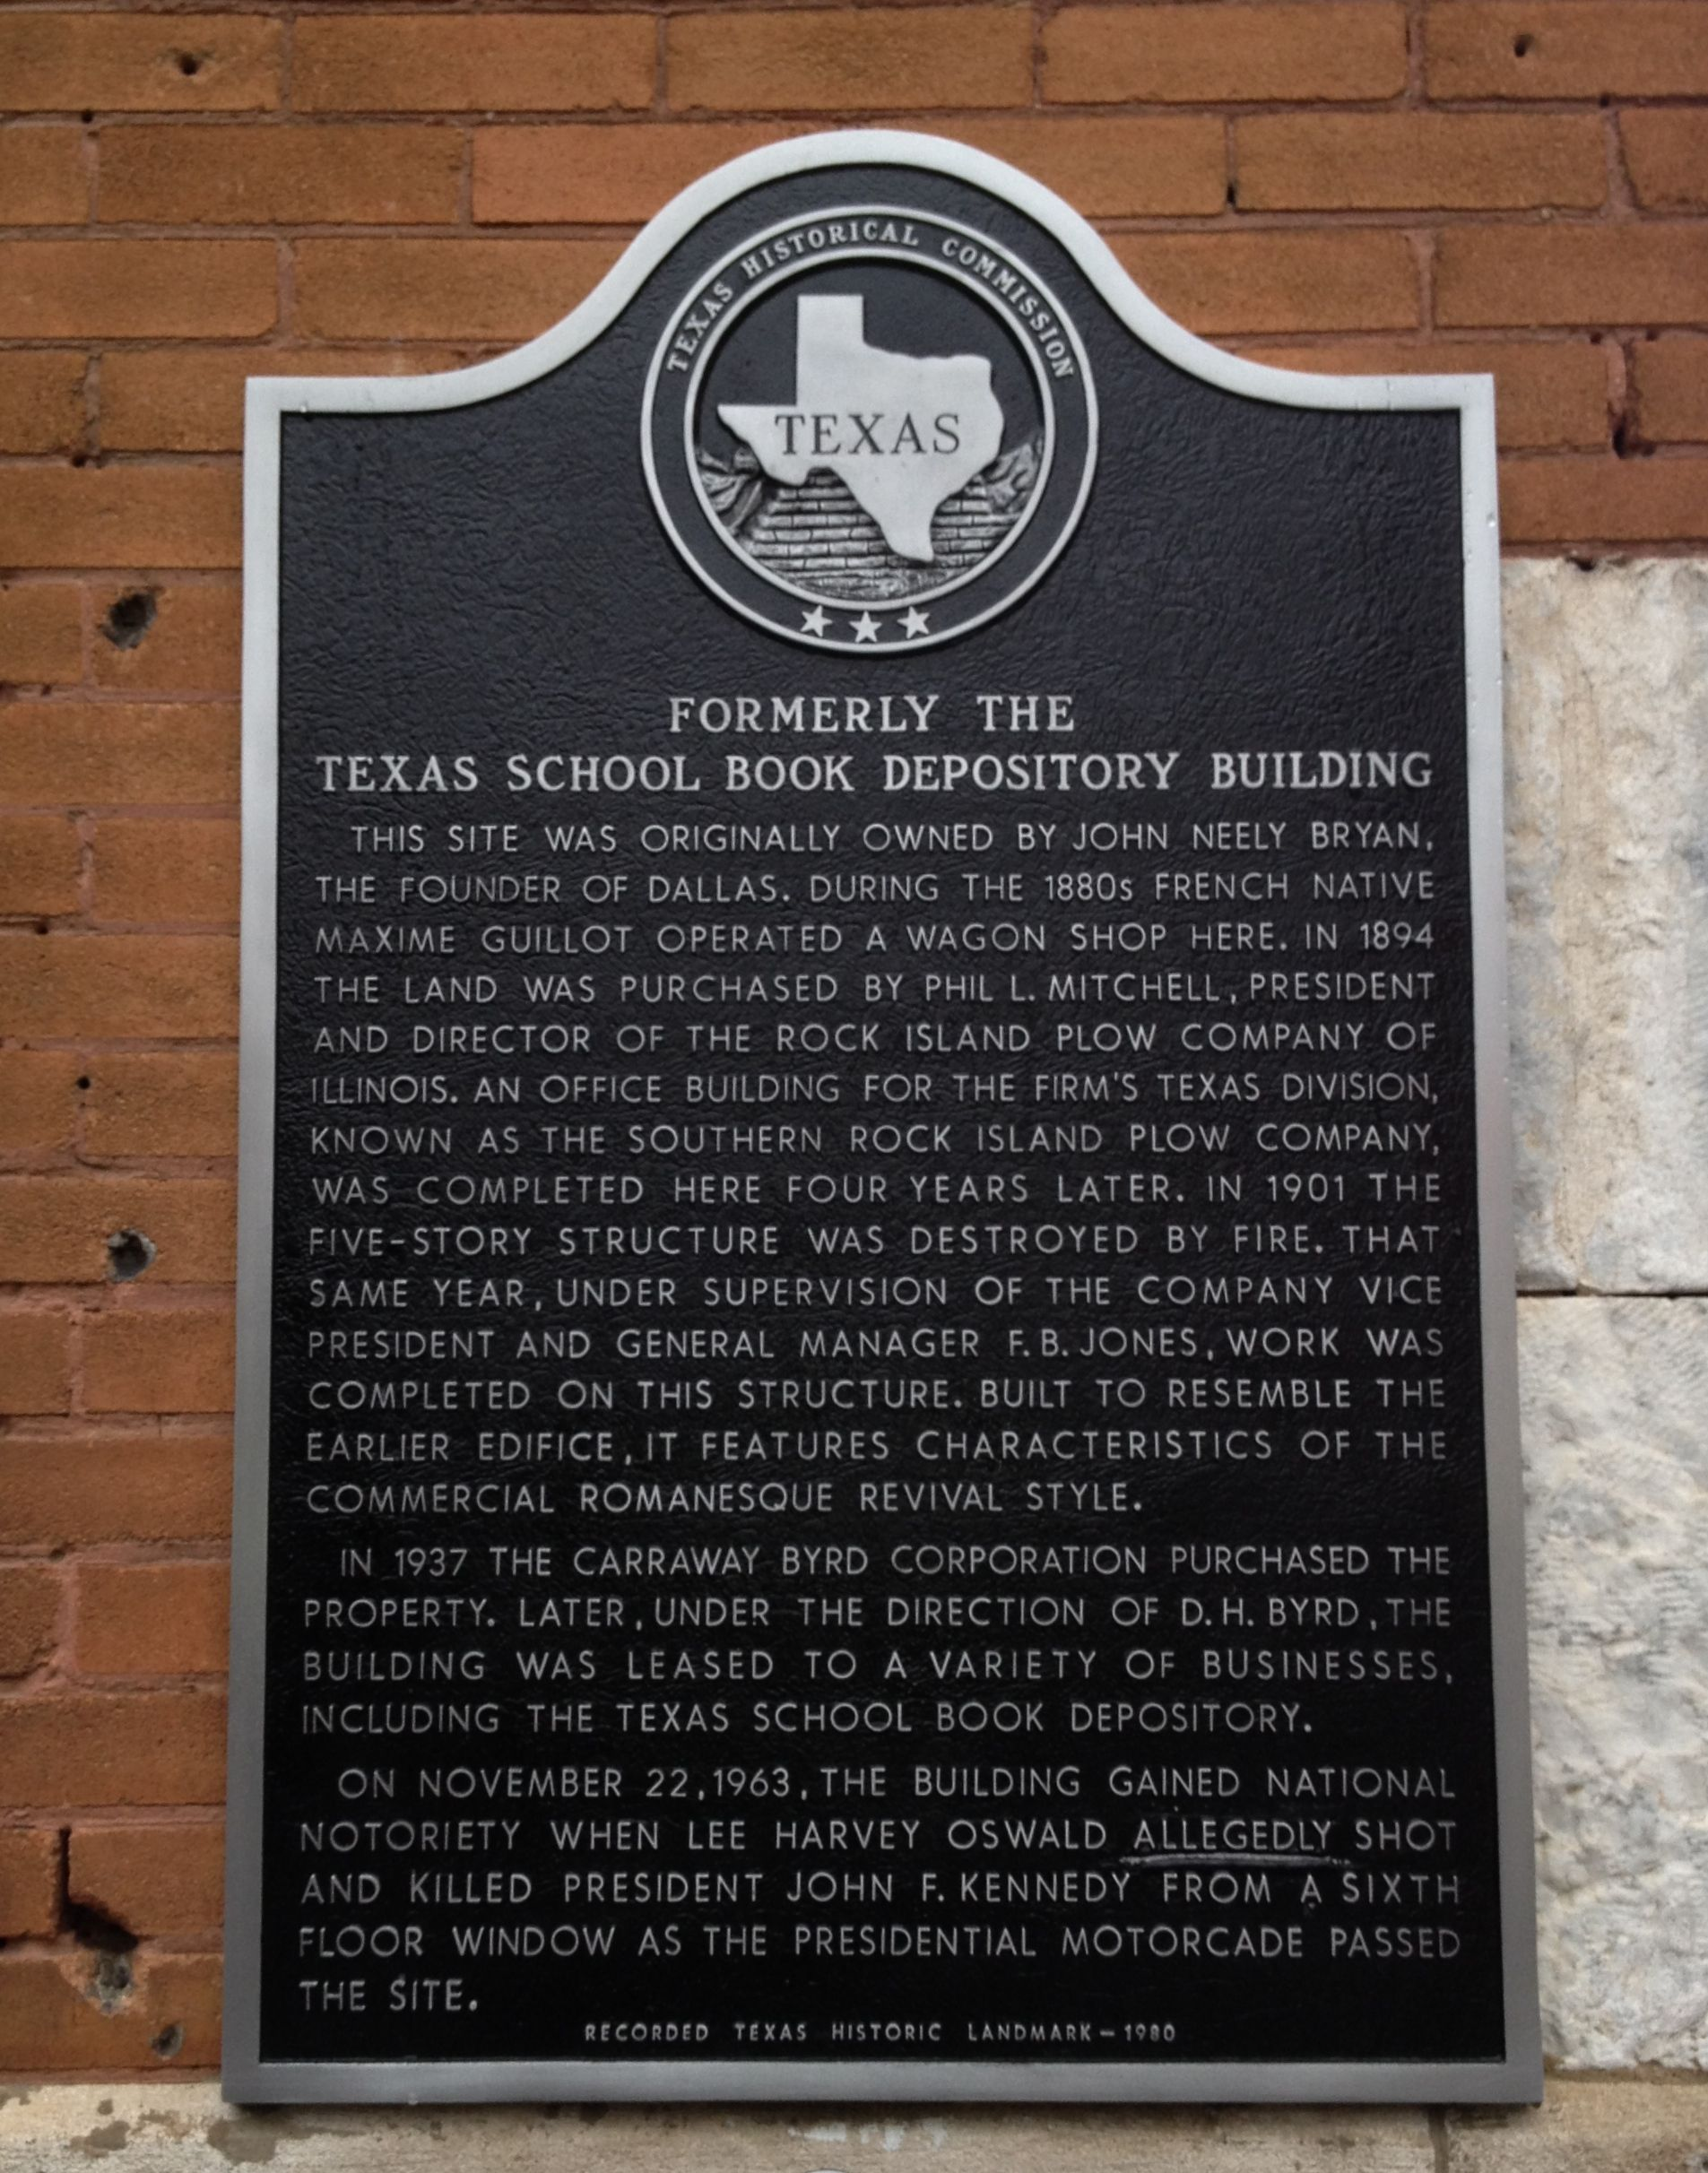 Plaque at the former Texas School Book Depository, now the